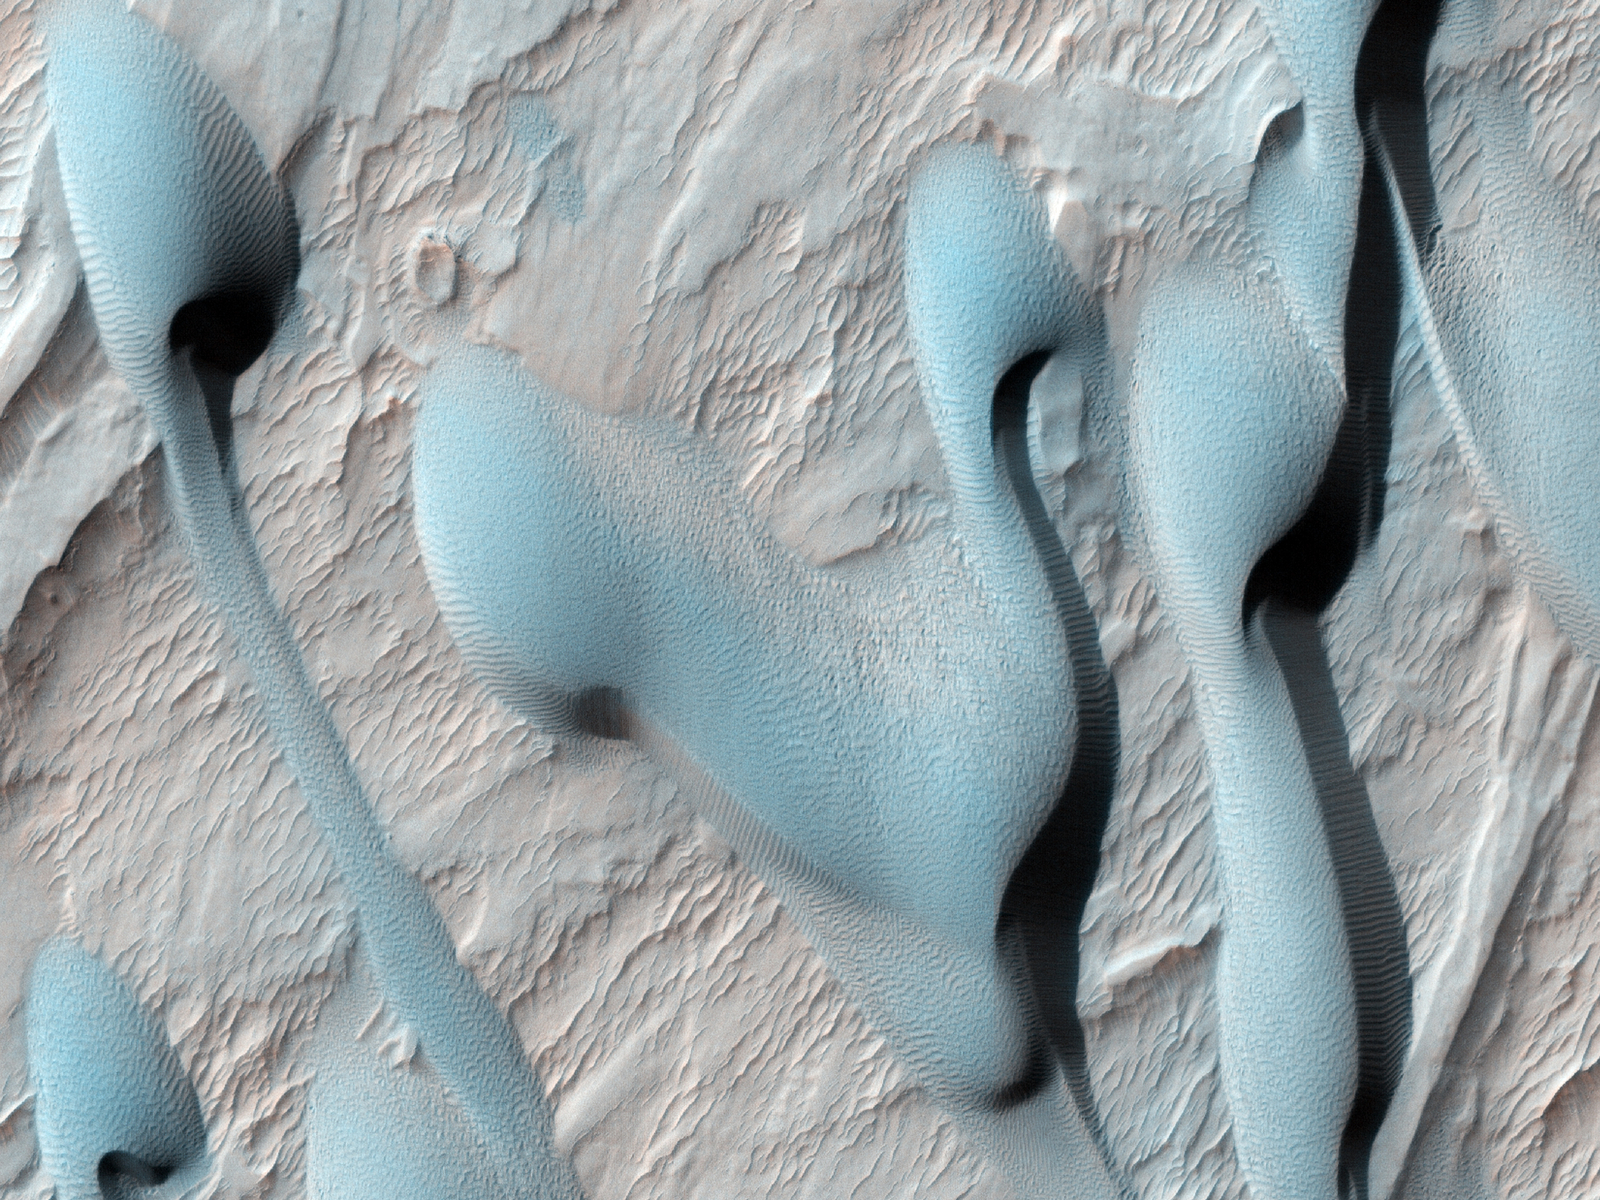 This scene shows dark sand dunes marching over the ridges created by an alluvial (water-deposited) fan in an impact crater.